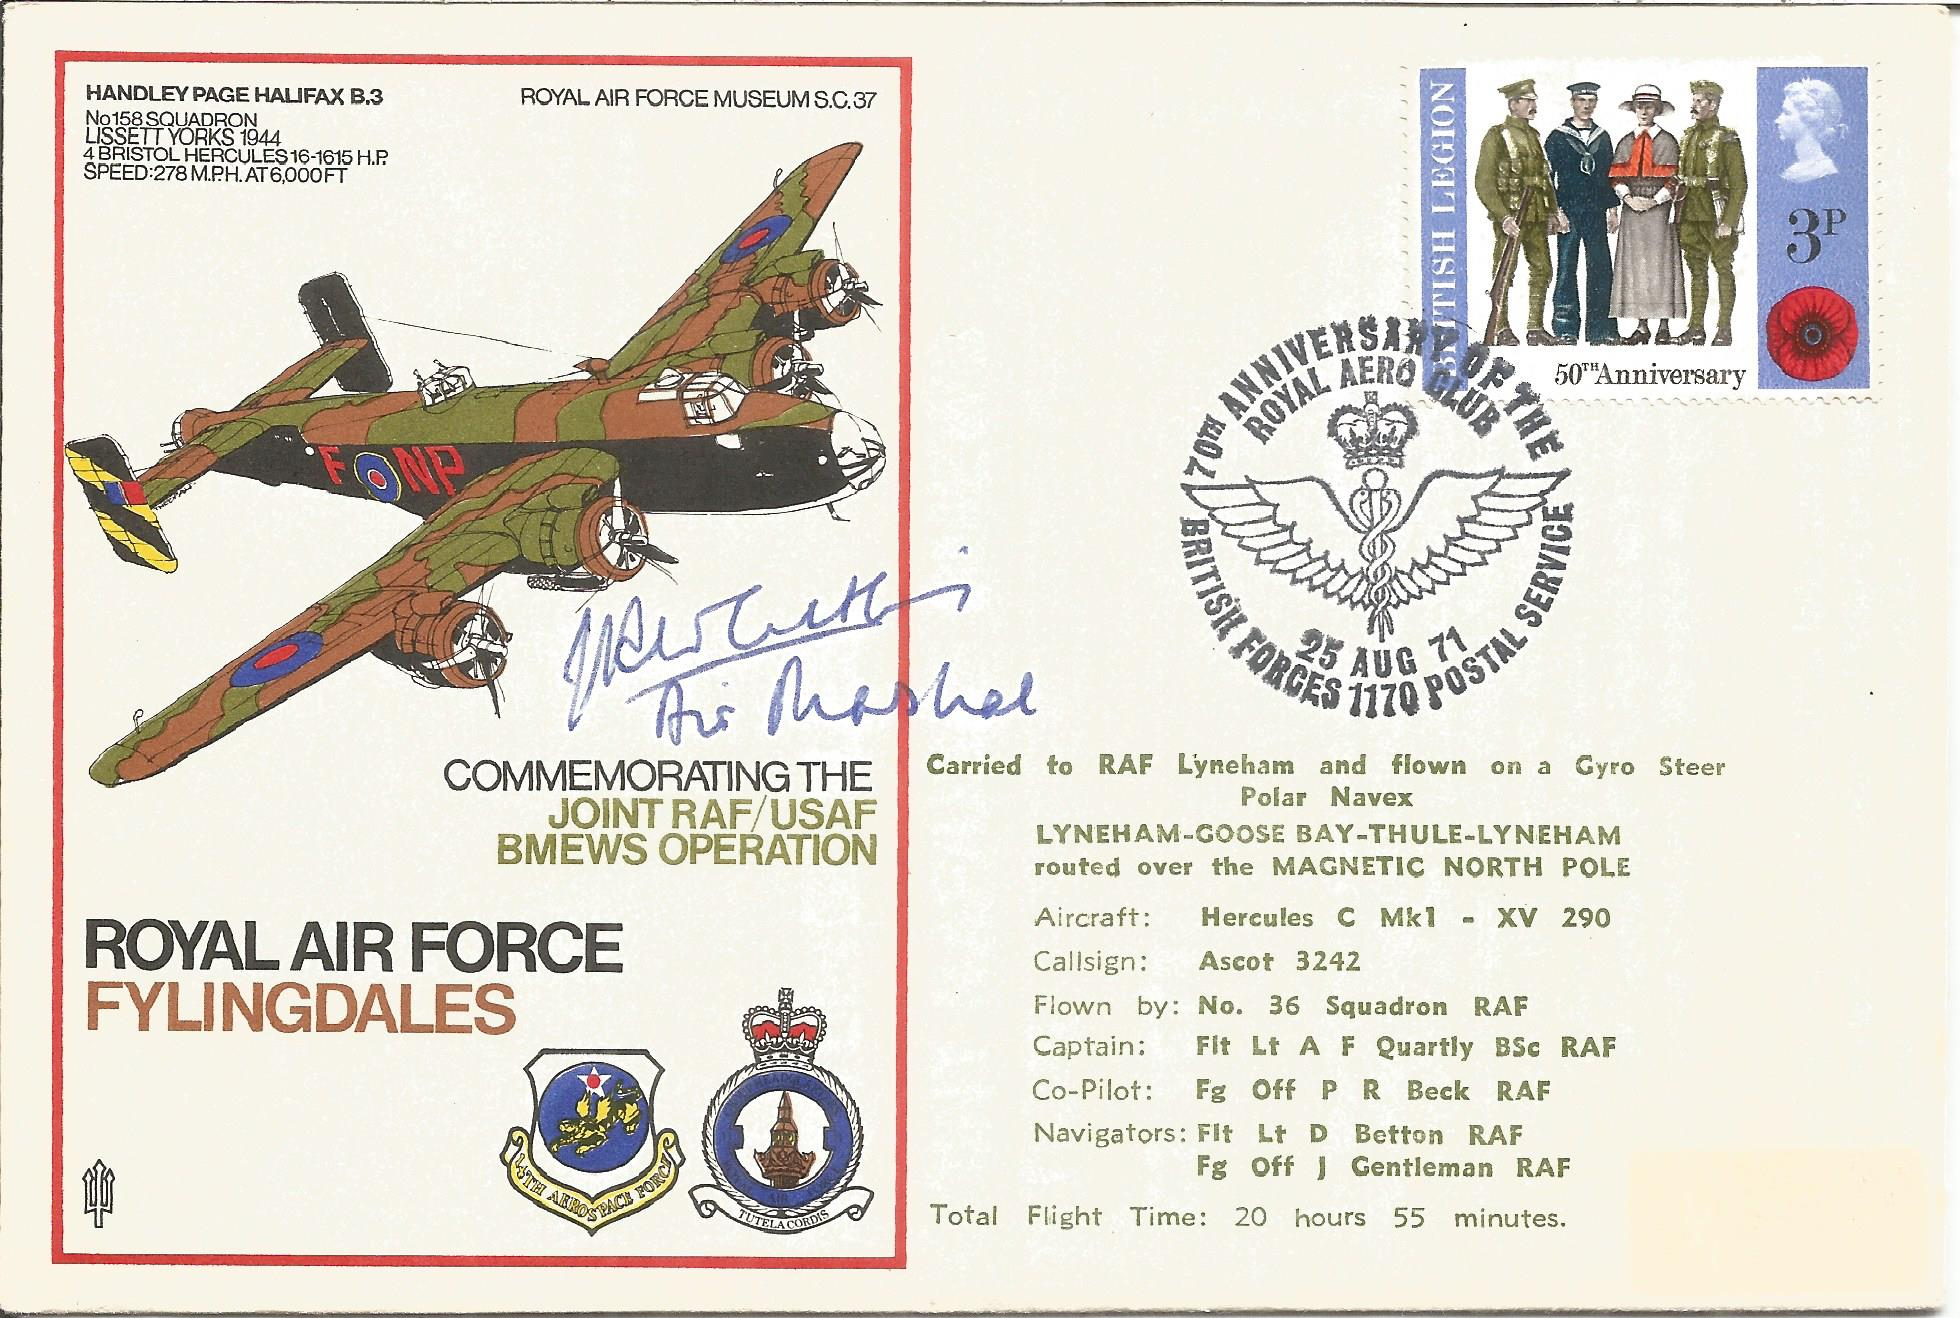 Air Marshall Sir John R. Whitley KBE CB DSO AFC* signed RAF Flyingdales Commemorating the Joint